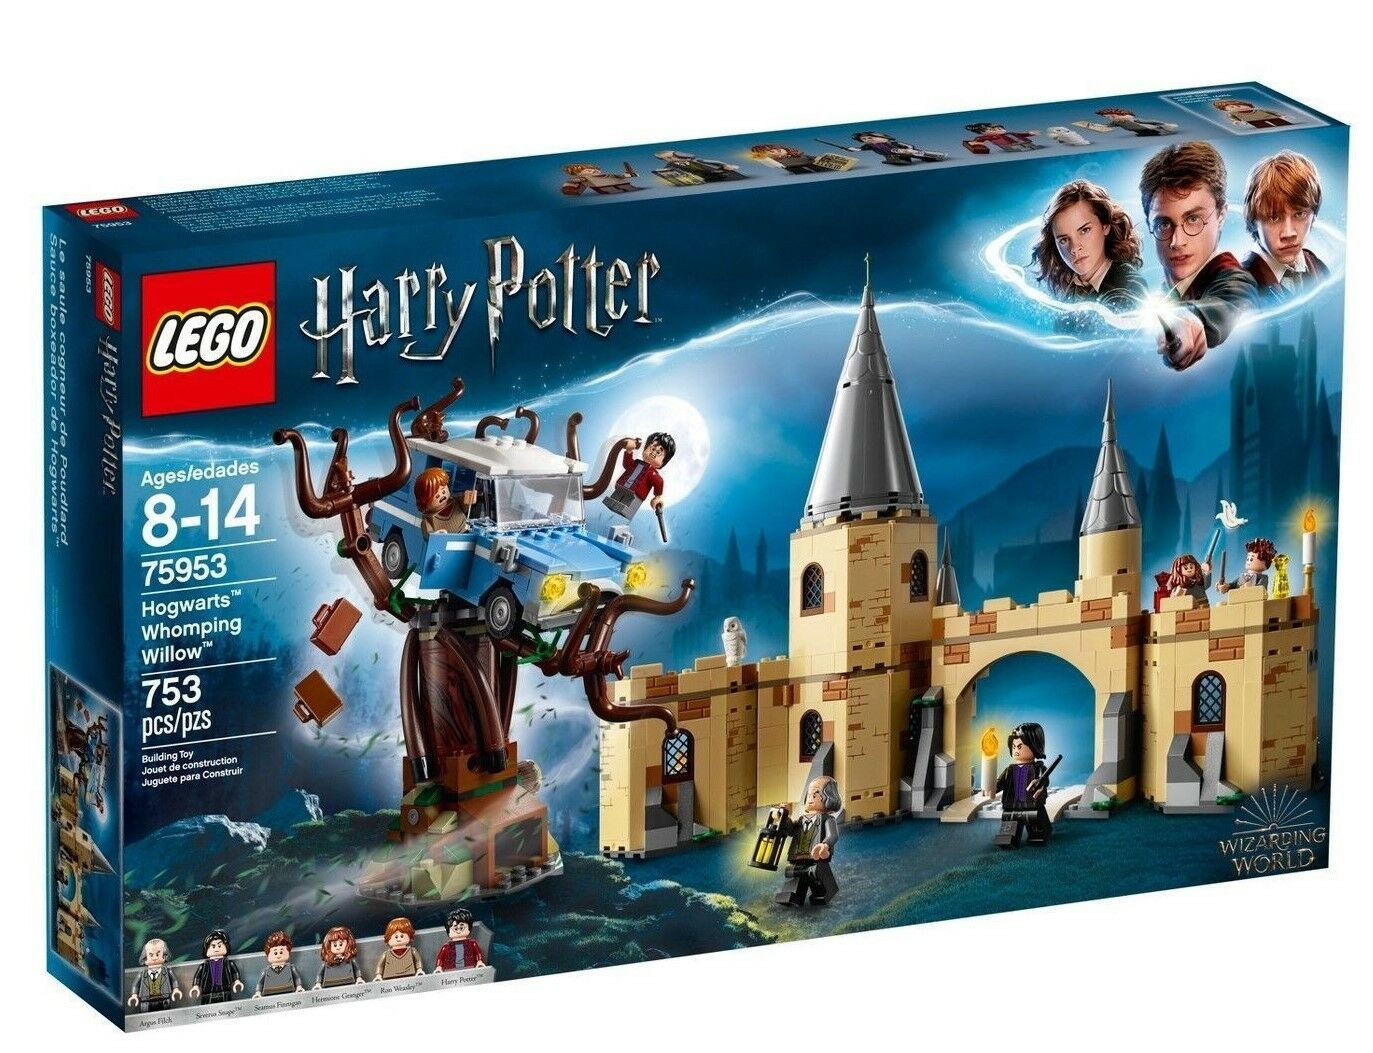 2018 LEGO-HARRY POTTER WIZARDING WORLD HOGWARTS WHOMPING  WILLOW 753 PC IN He  per il commercio all'ingrosso